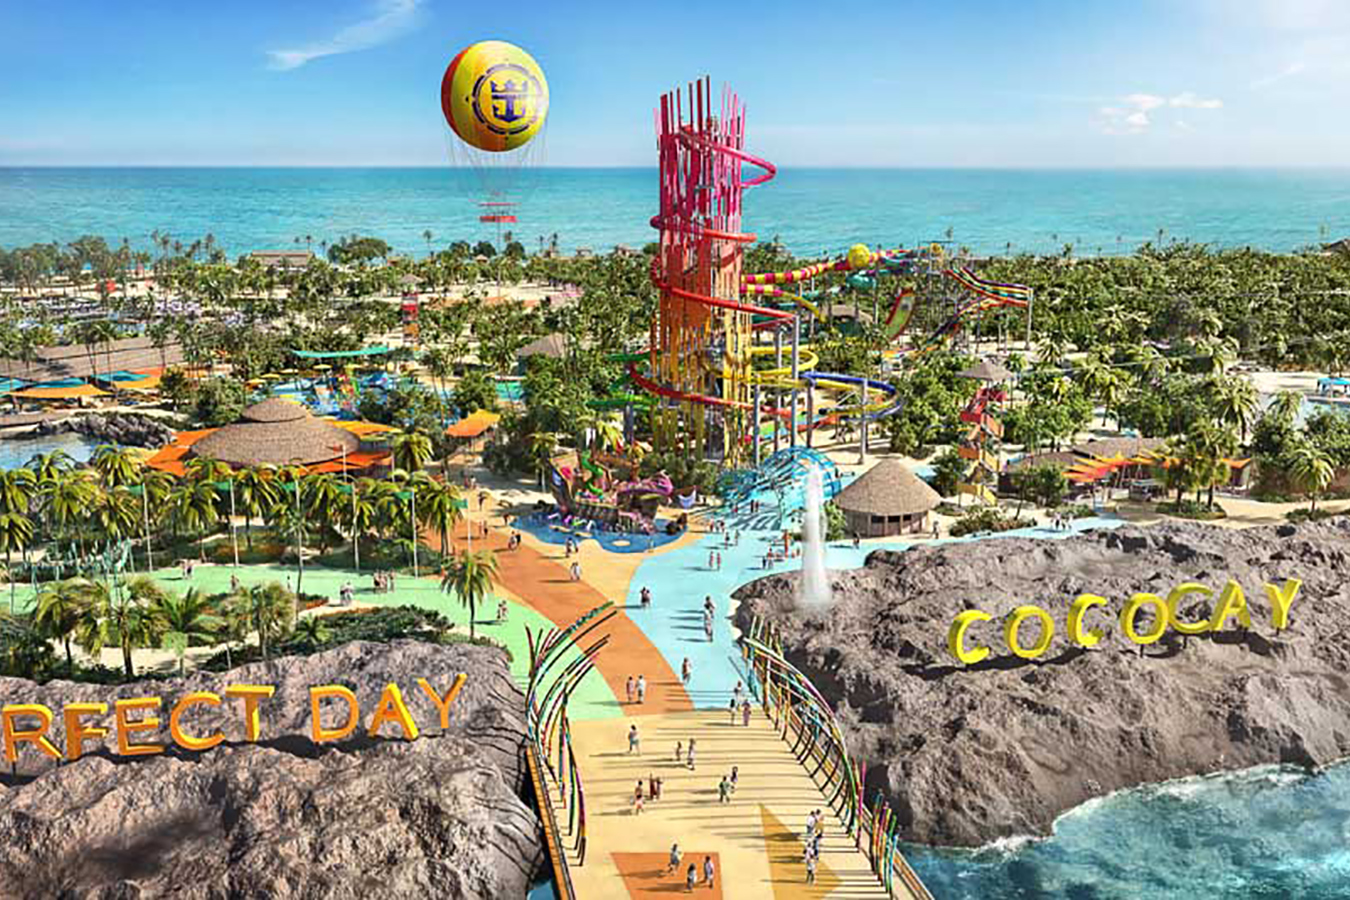 Cococay – A perfect day